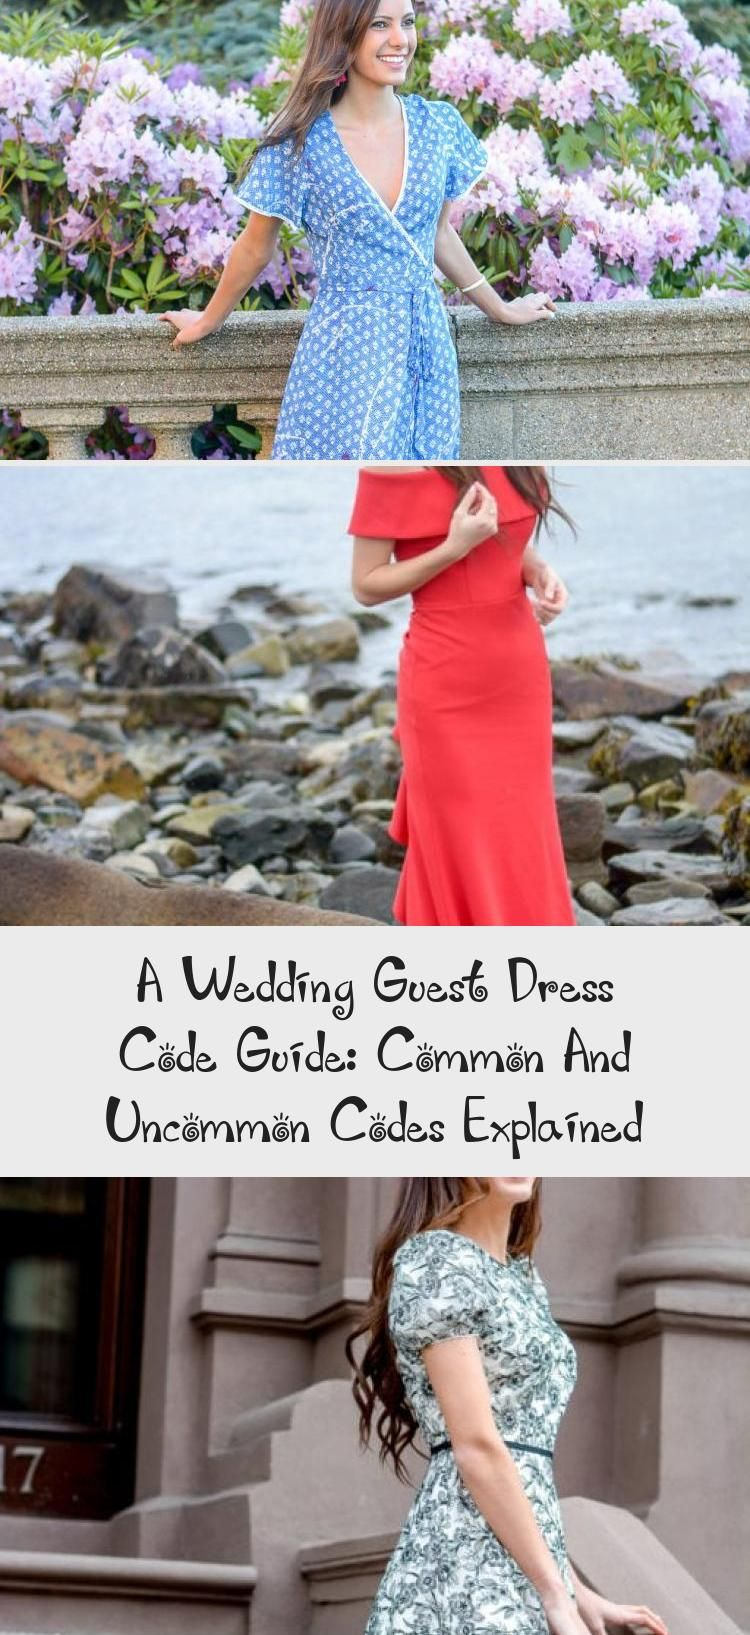 A Wedding Guest Dress Code Guide: Common And Uncommon ...